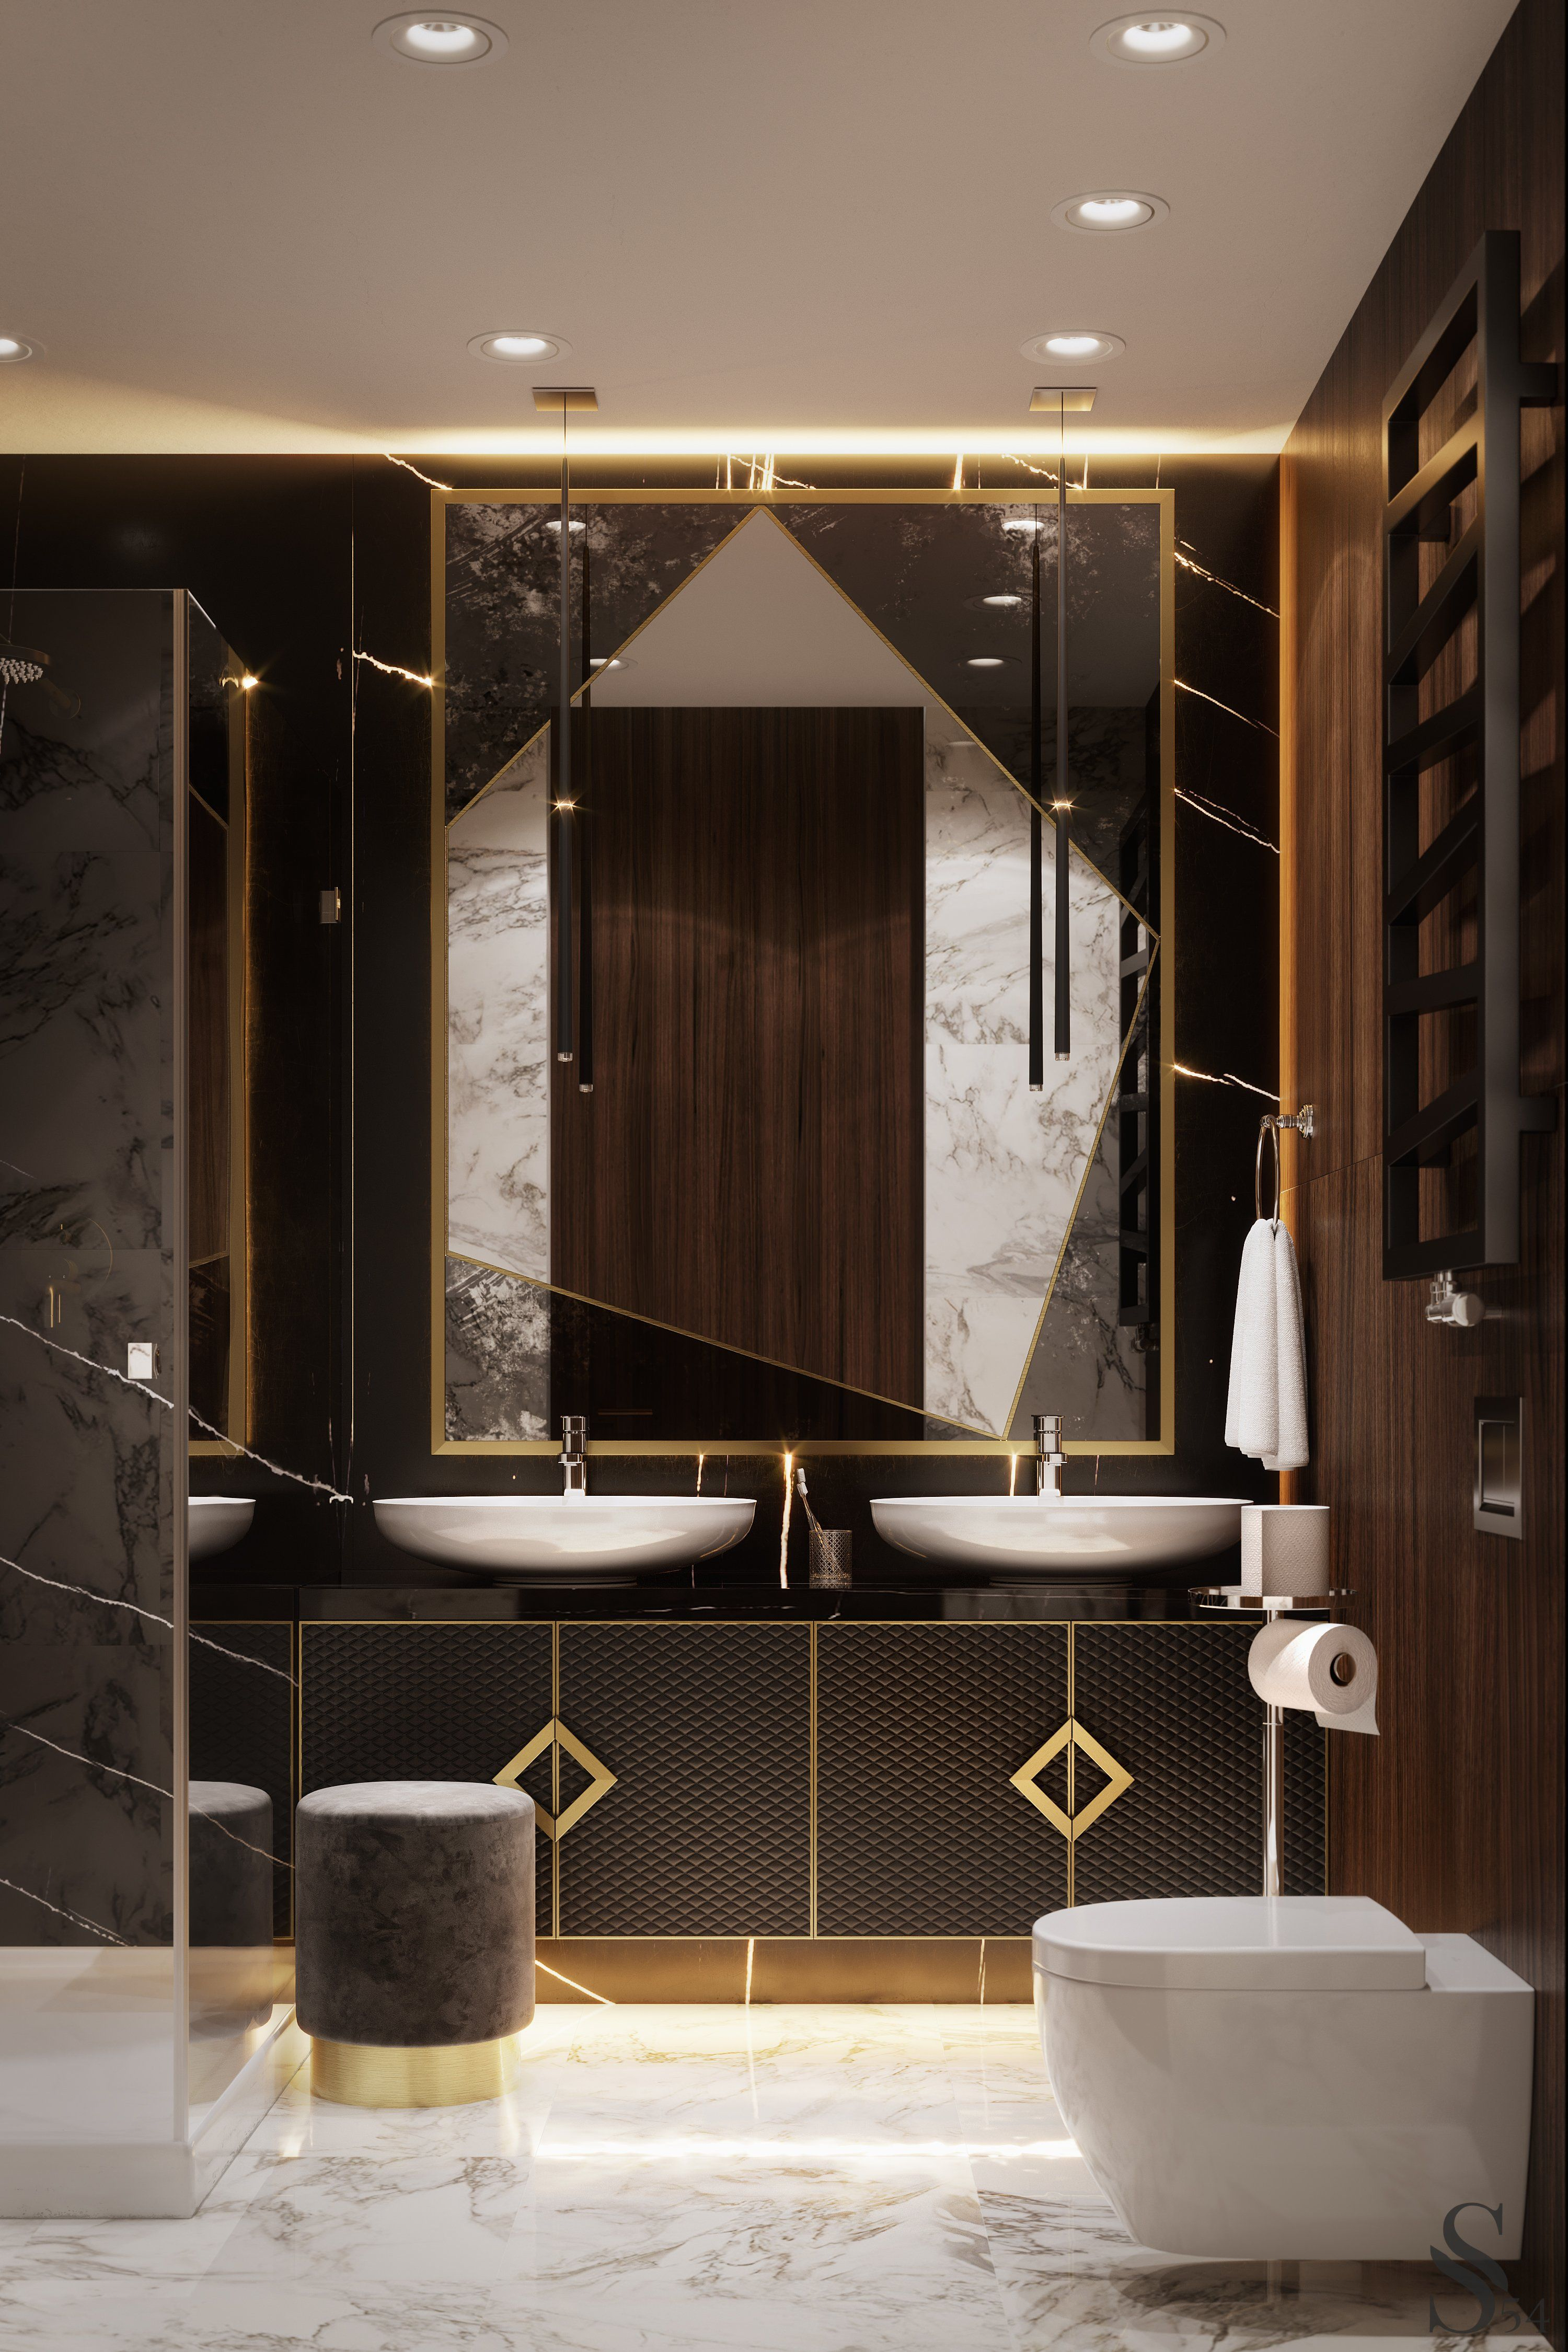 Nidhal garmo also best house board images in home decor luxury houses rh pinterest